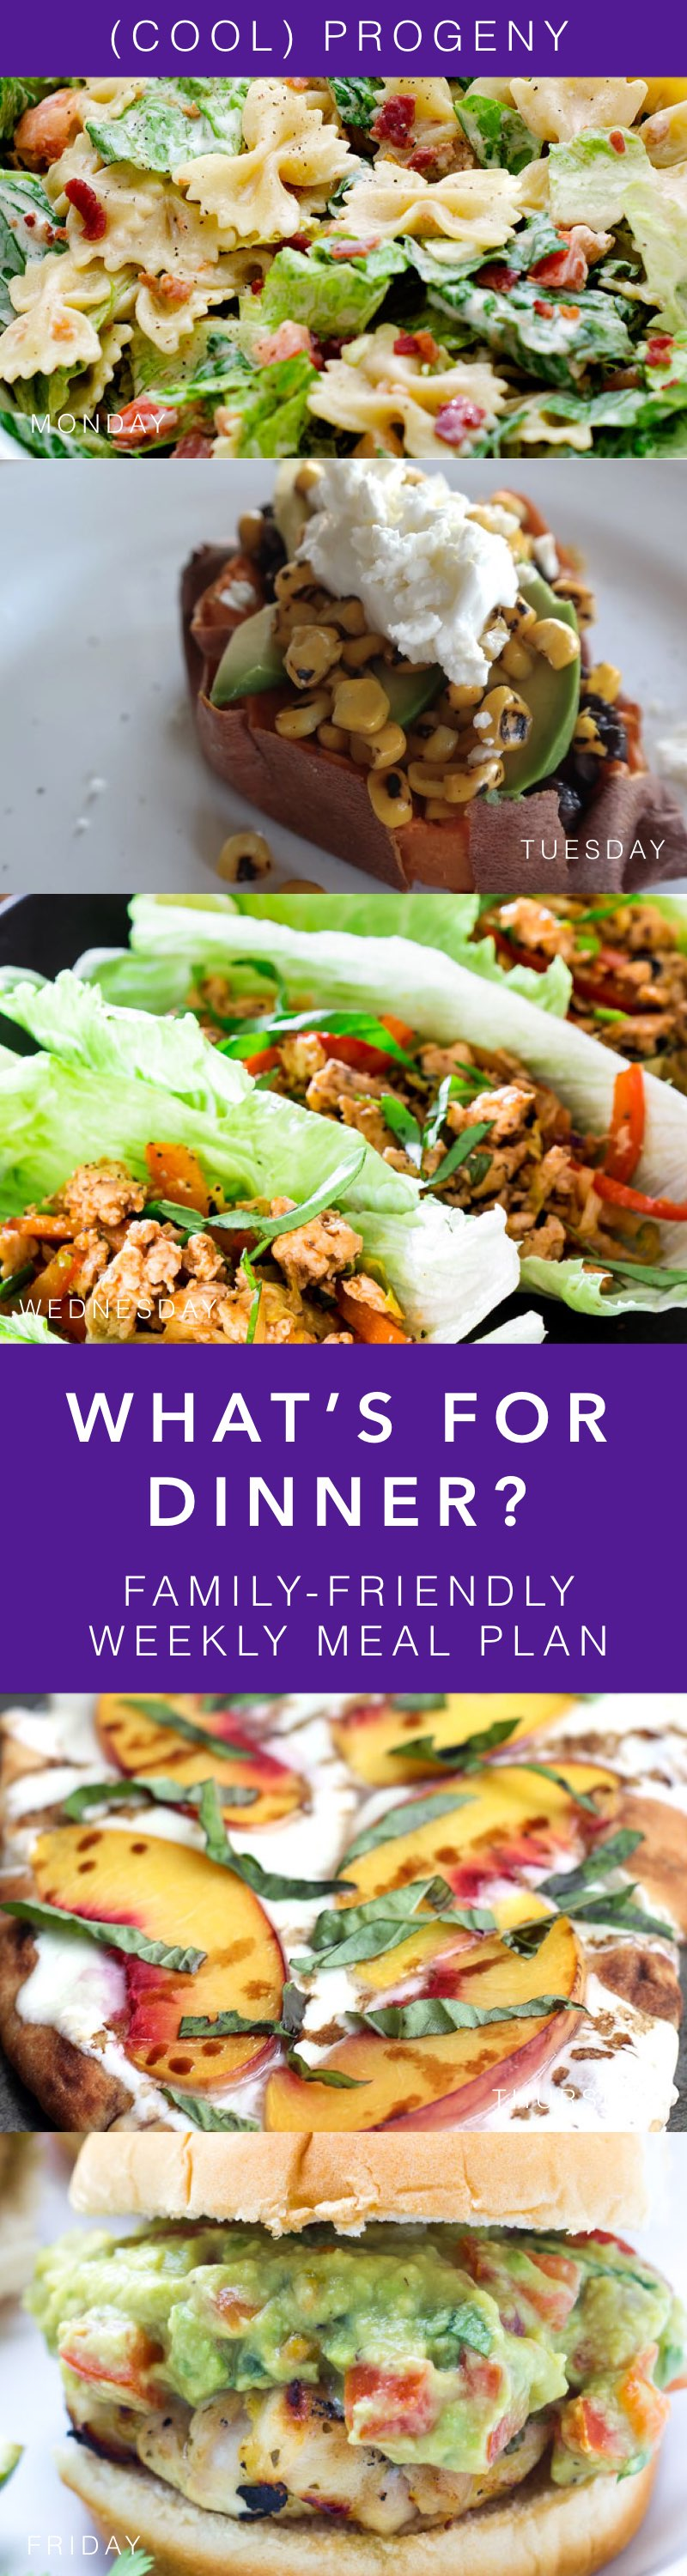 Family Friendly Dinners Week - (cool) progeny